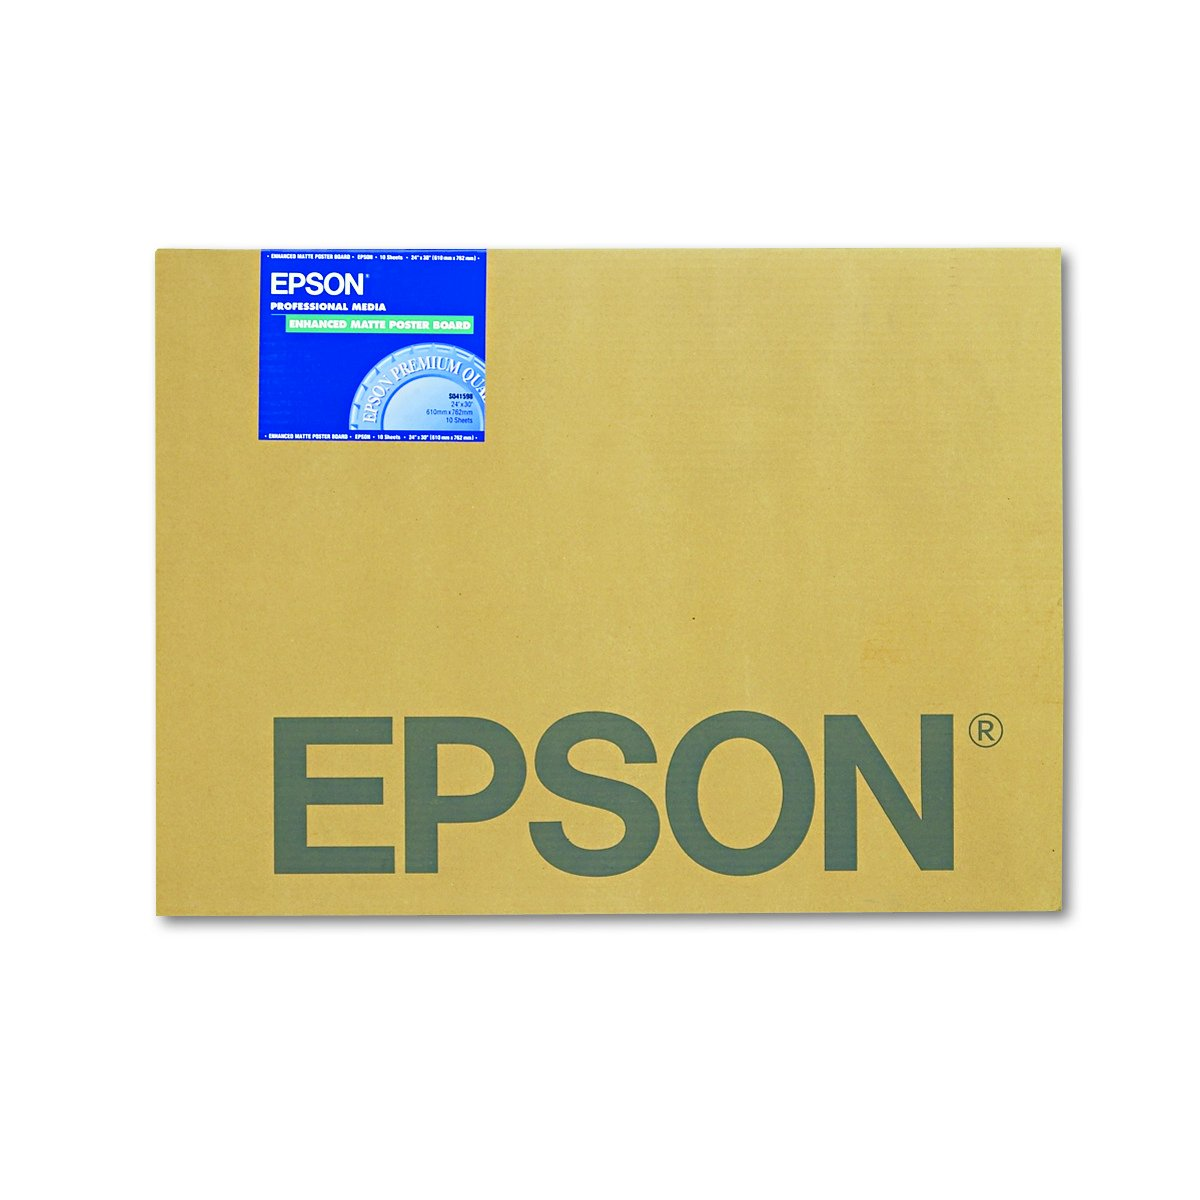 amazon com epson s041598 enhanced matte posterboard 30 x 24